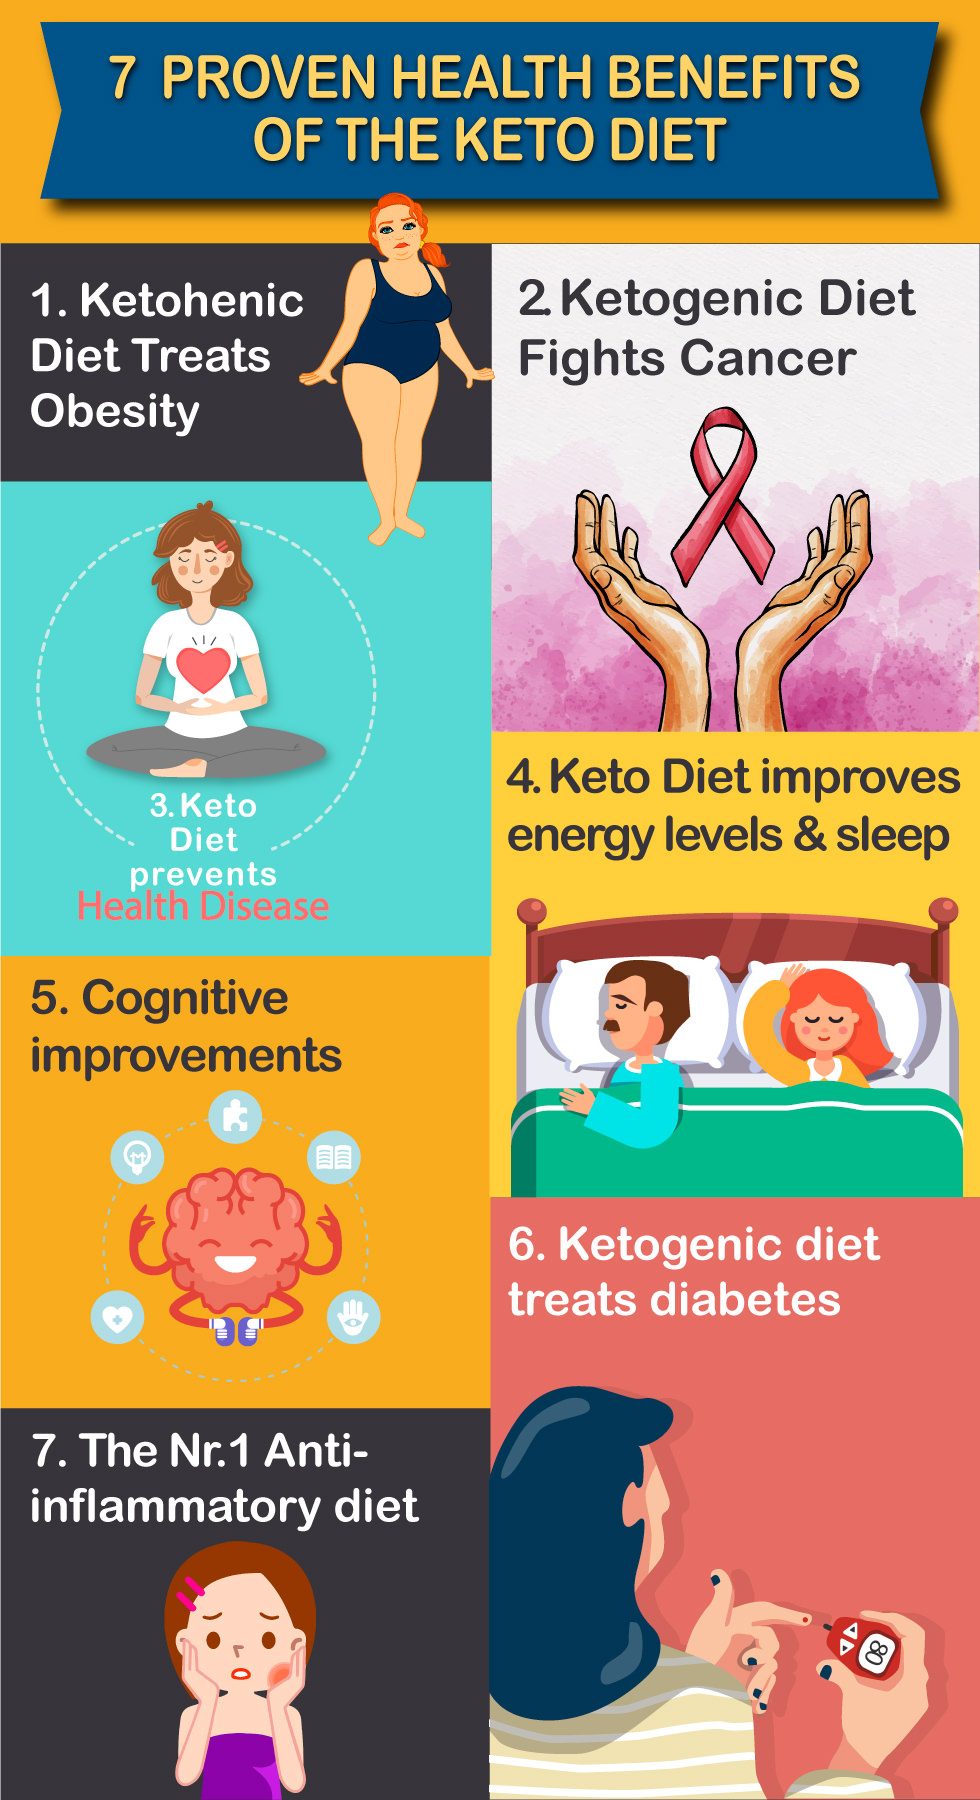 7 Scientifically Proven Health Benefits of the Keto Diet